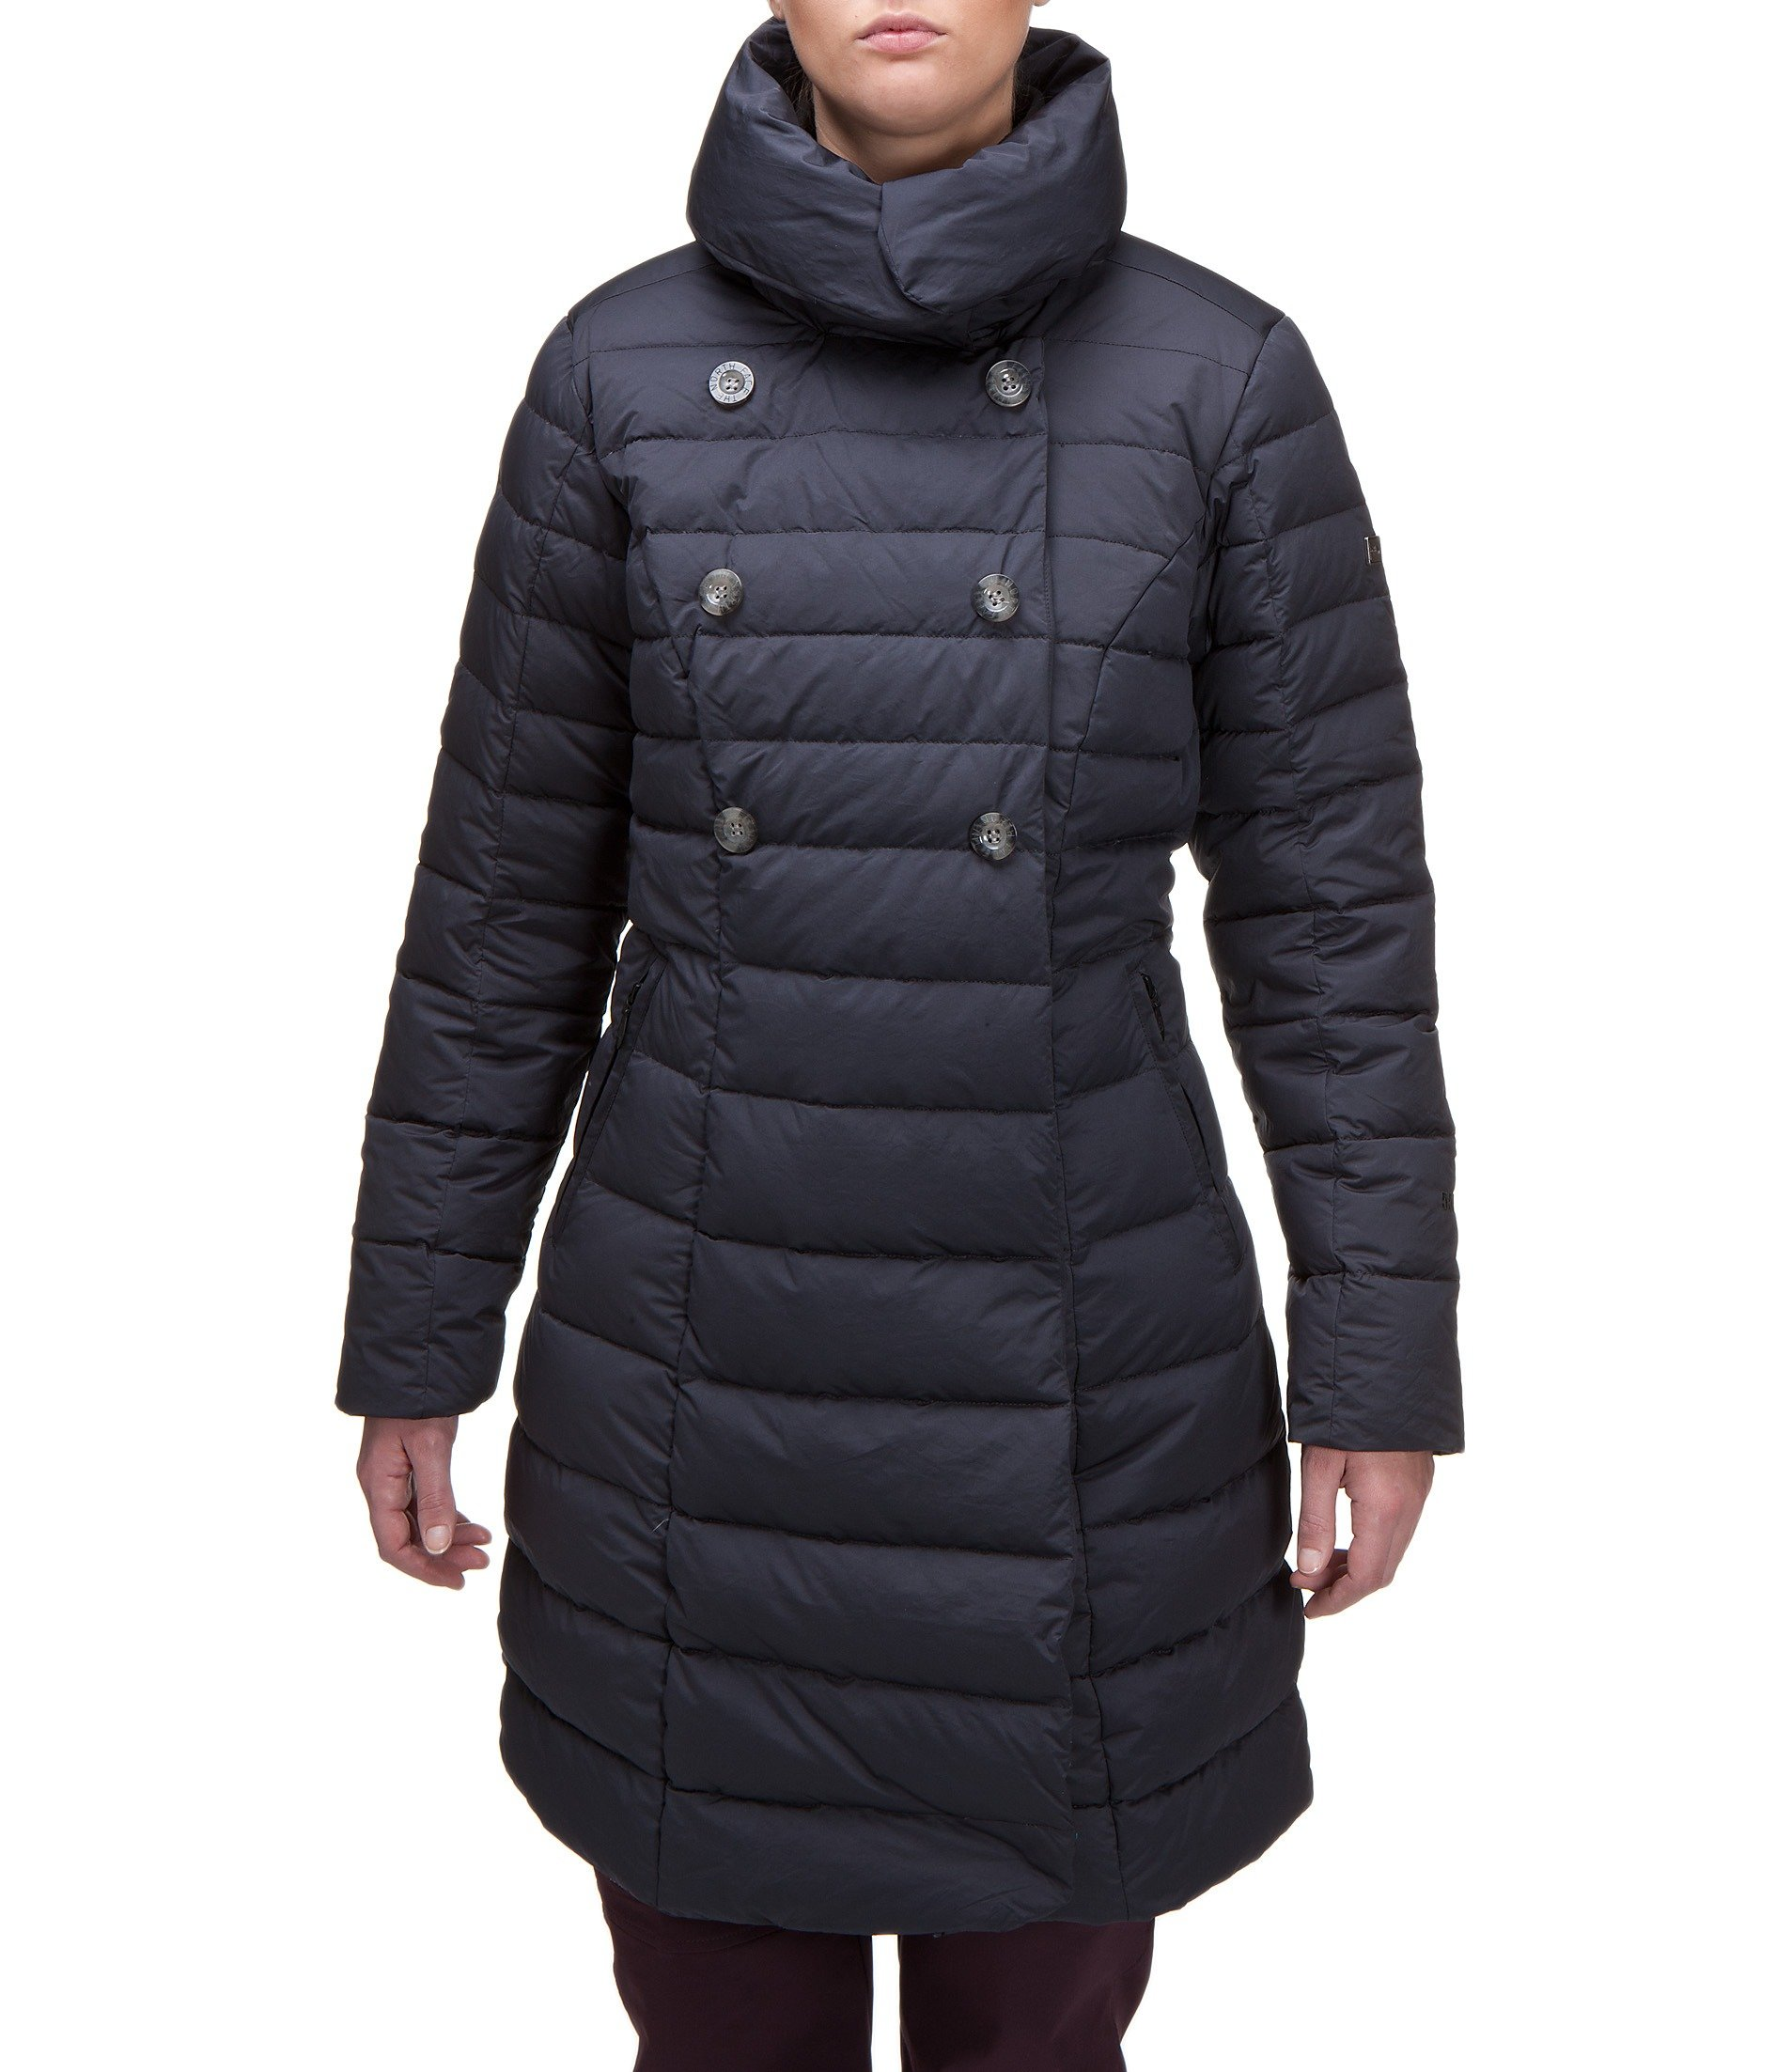 North face paulette damejakke fra The north face fra billigsport24